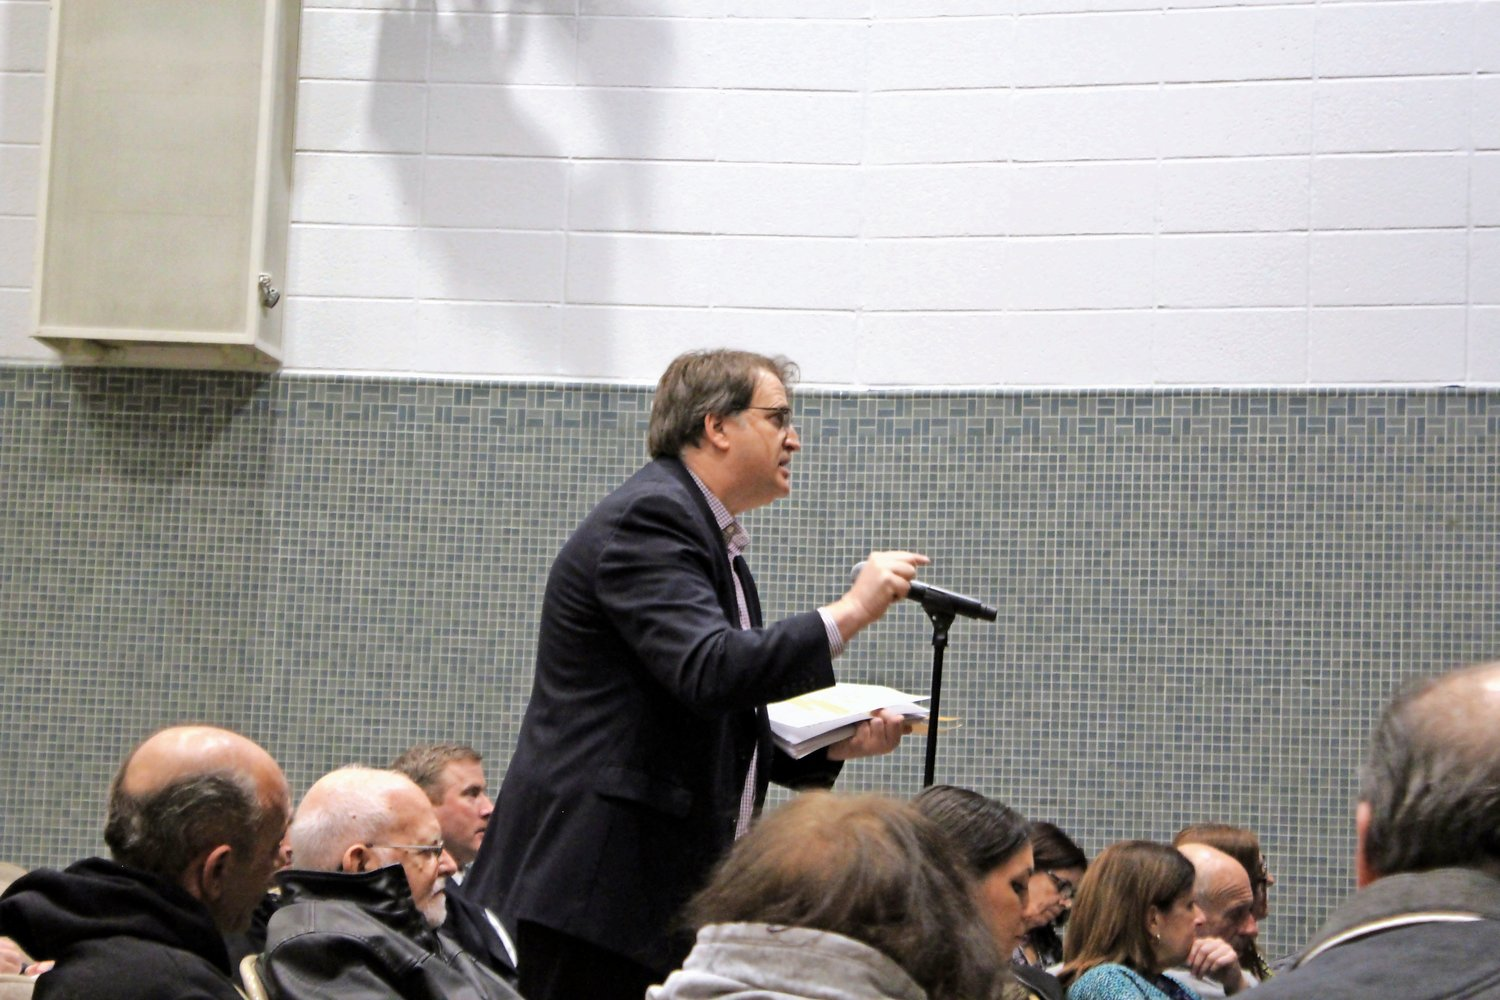 Island Park resident Richard Shurin, a fierce opponent of the LIPA tax reduction over the past few years, spoke at the community meeting hosted by LIPA and Nassau County on Jan. 15.